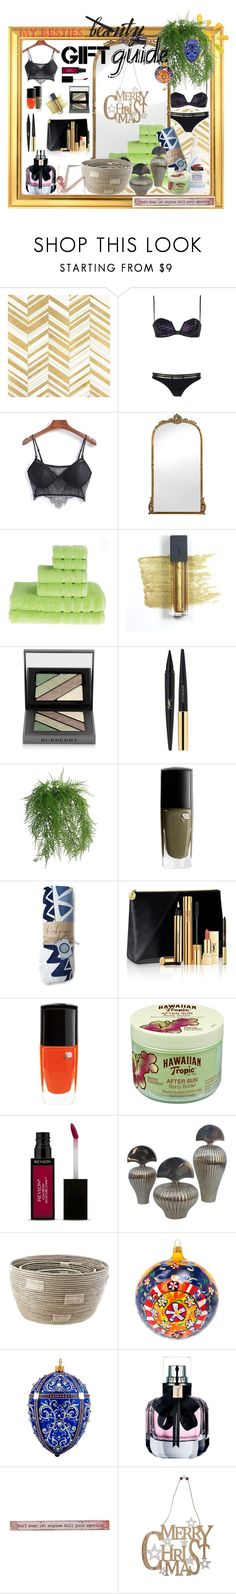 """#besties Beauty BY Sisk@ winter 2016"" by dominique-boiche ❤ liked on Polyvore featuring Home Decorators Collection, La Perla, Bite, Burberry, Yves Saint Laurent, Abigail Ahern, Lancôme, The Beach People, Hawaiian Tropic and Revlon"